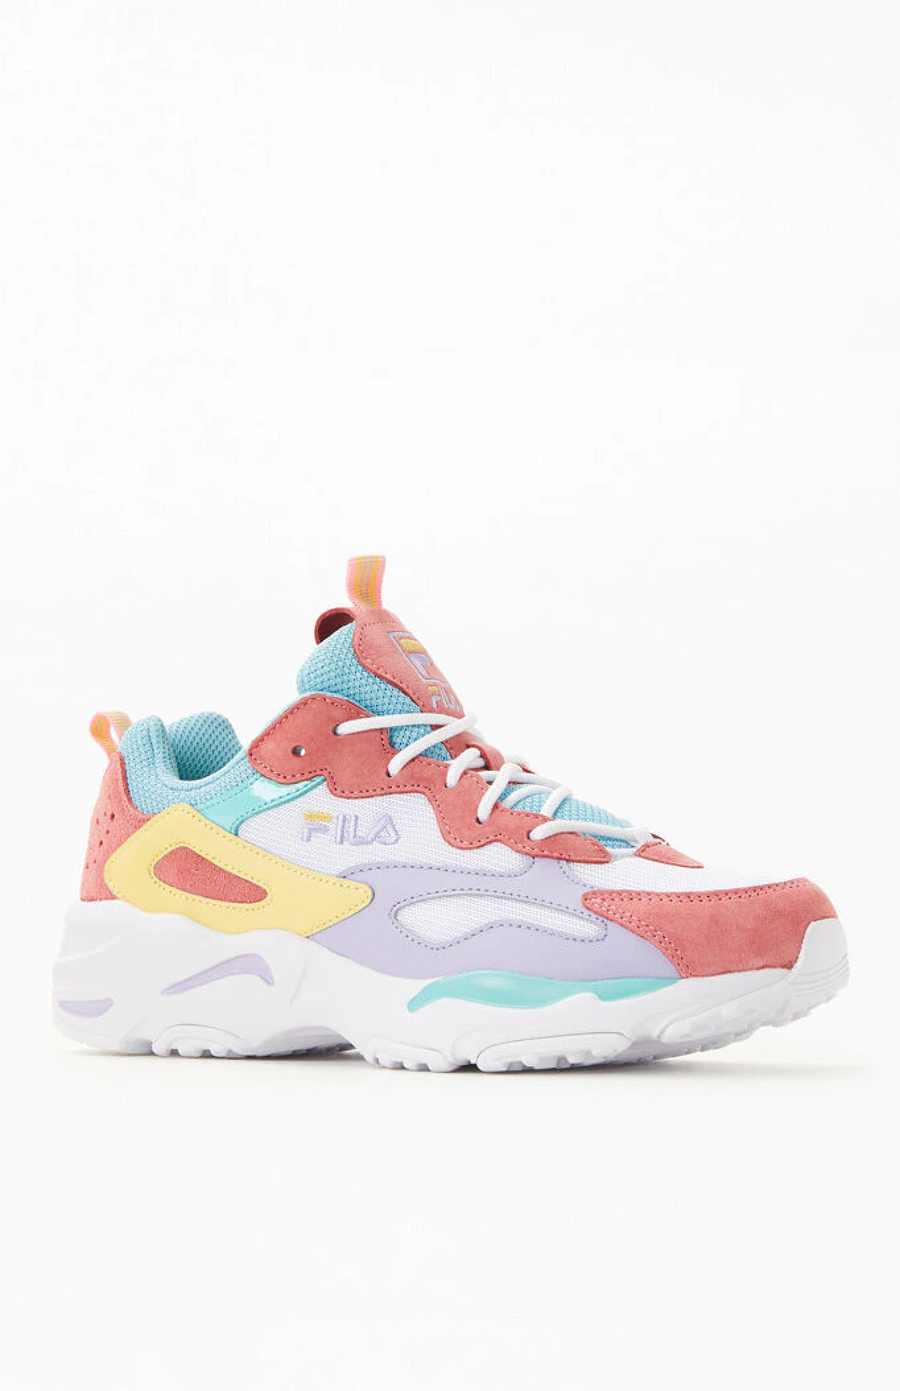 Fila Ray Tracer Chunky Dad Sneaker Art Deco Pastels